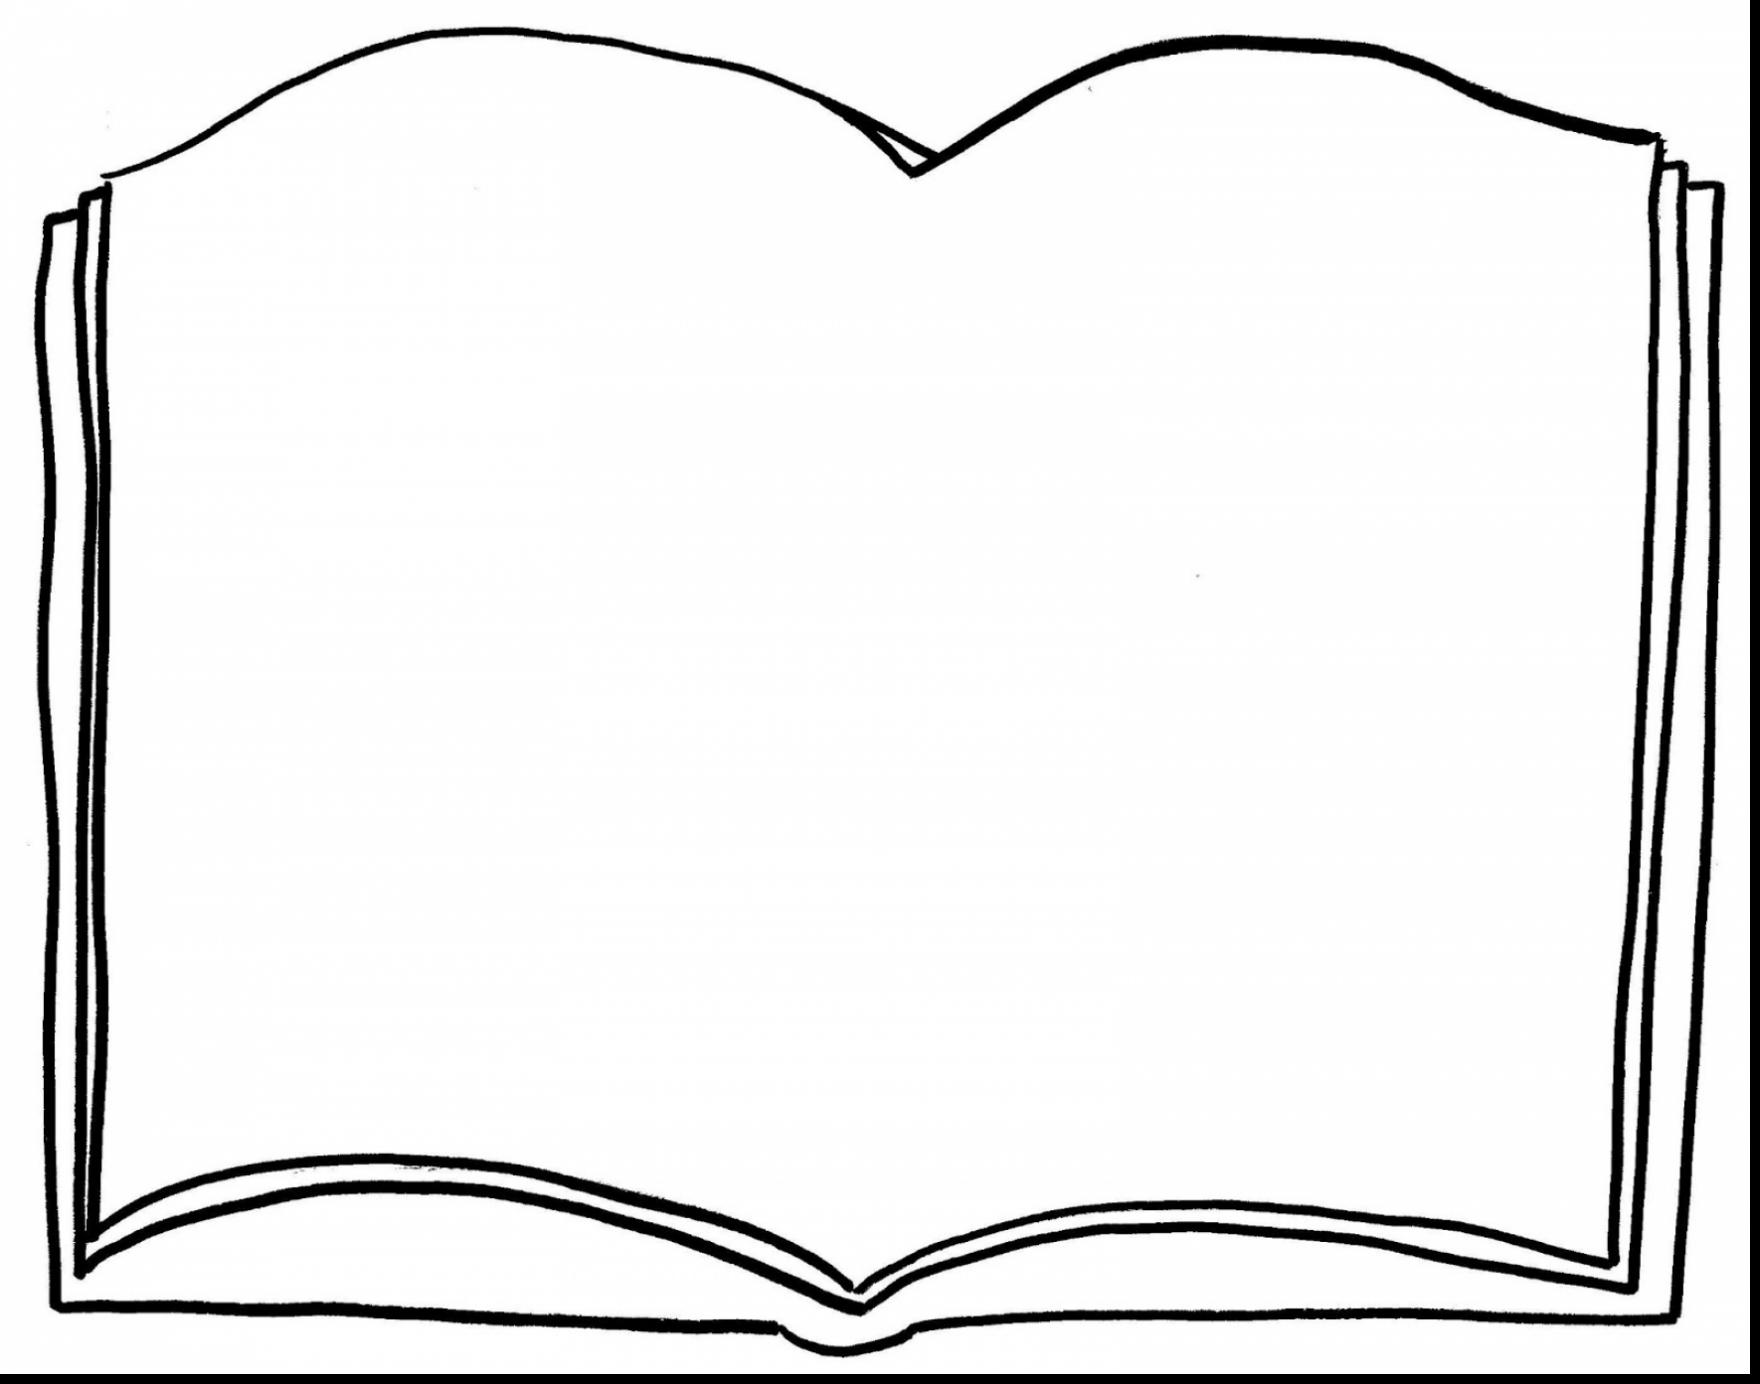 1760x1384 Blank Open Book Clip Art Monochrome Silhouette With Open Book